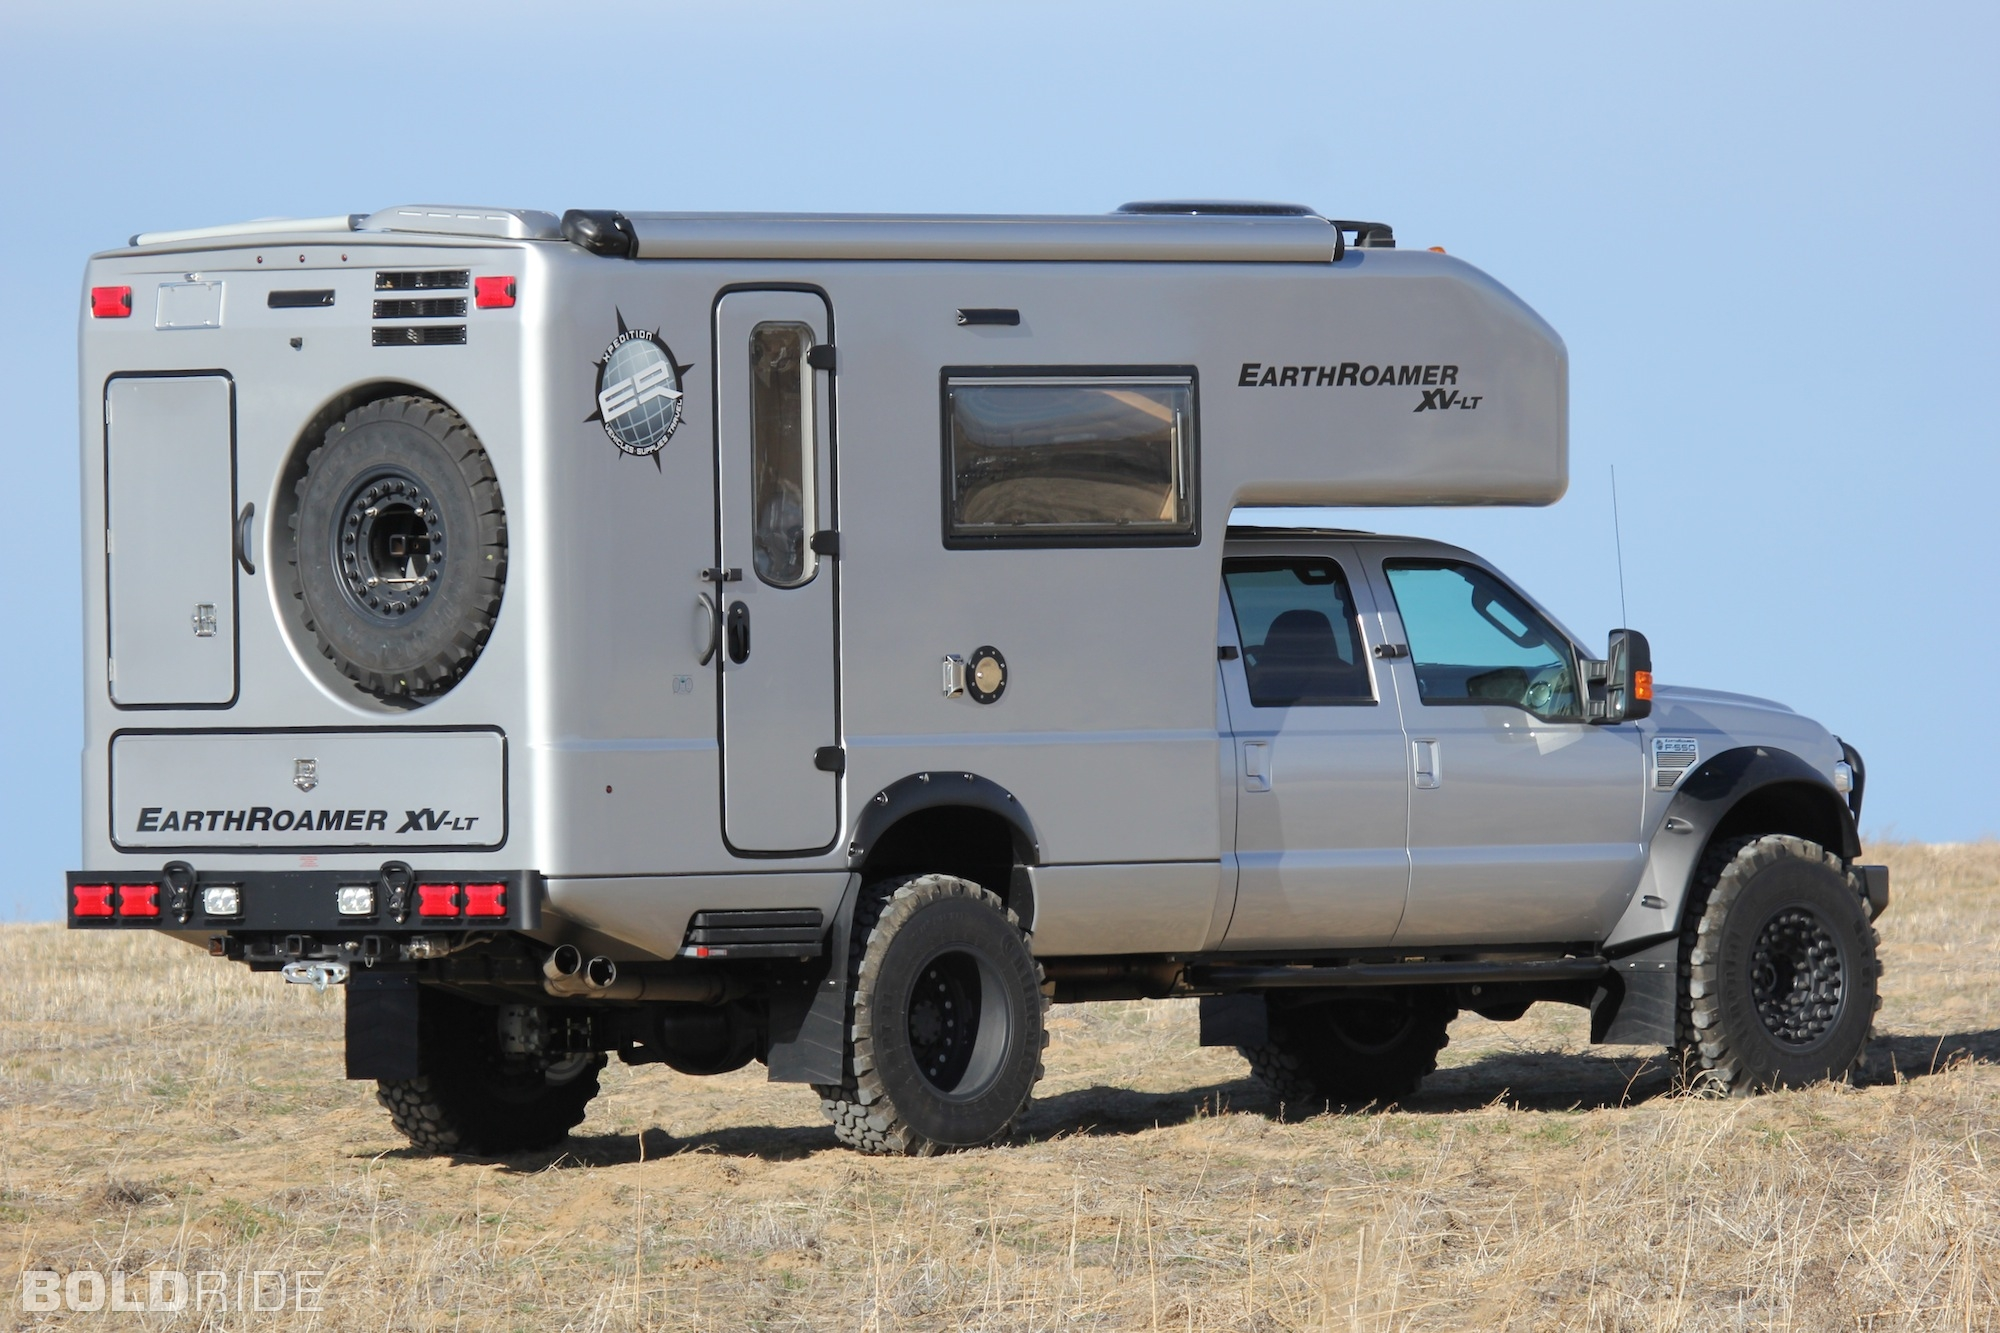 2013 Ford F-550 XV-LT 4x4 offroad truck camper s wallpaper background